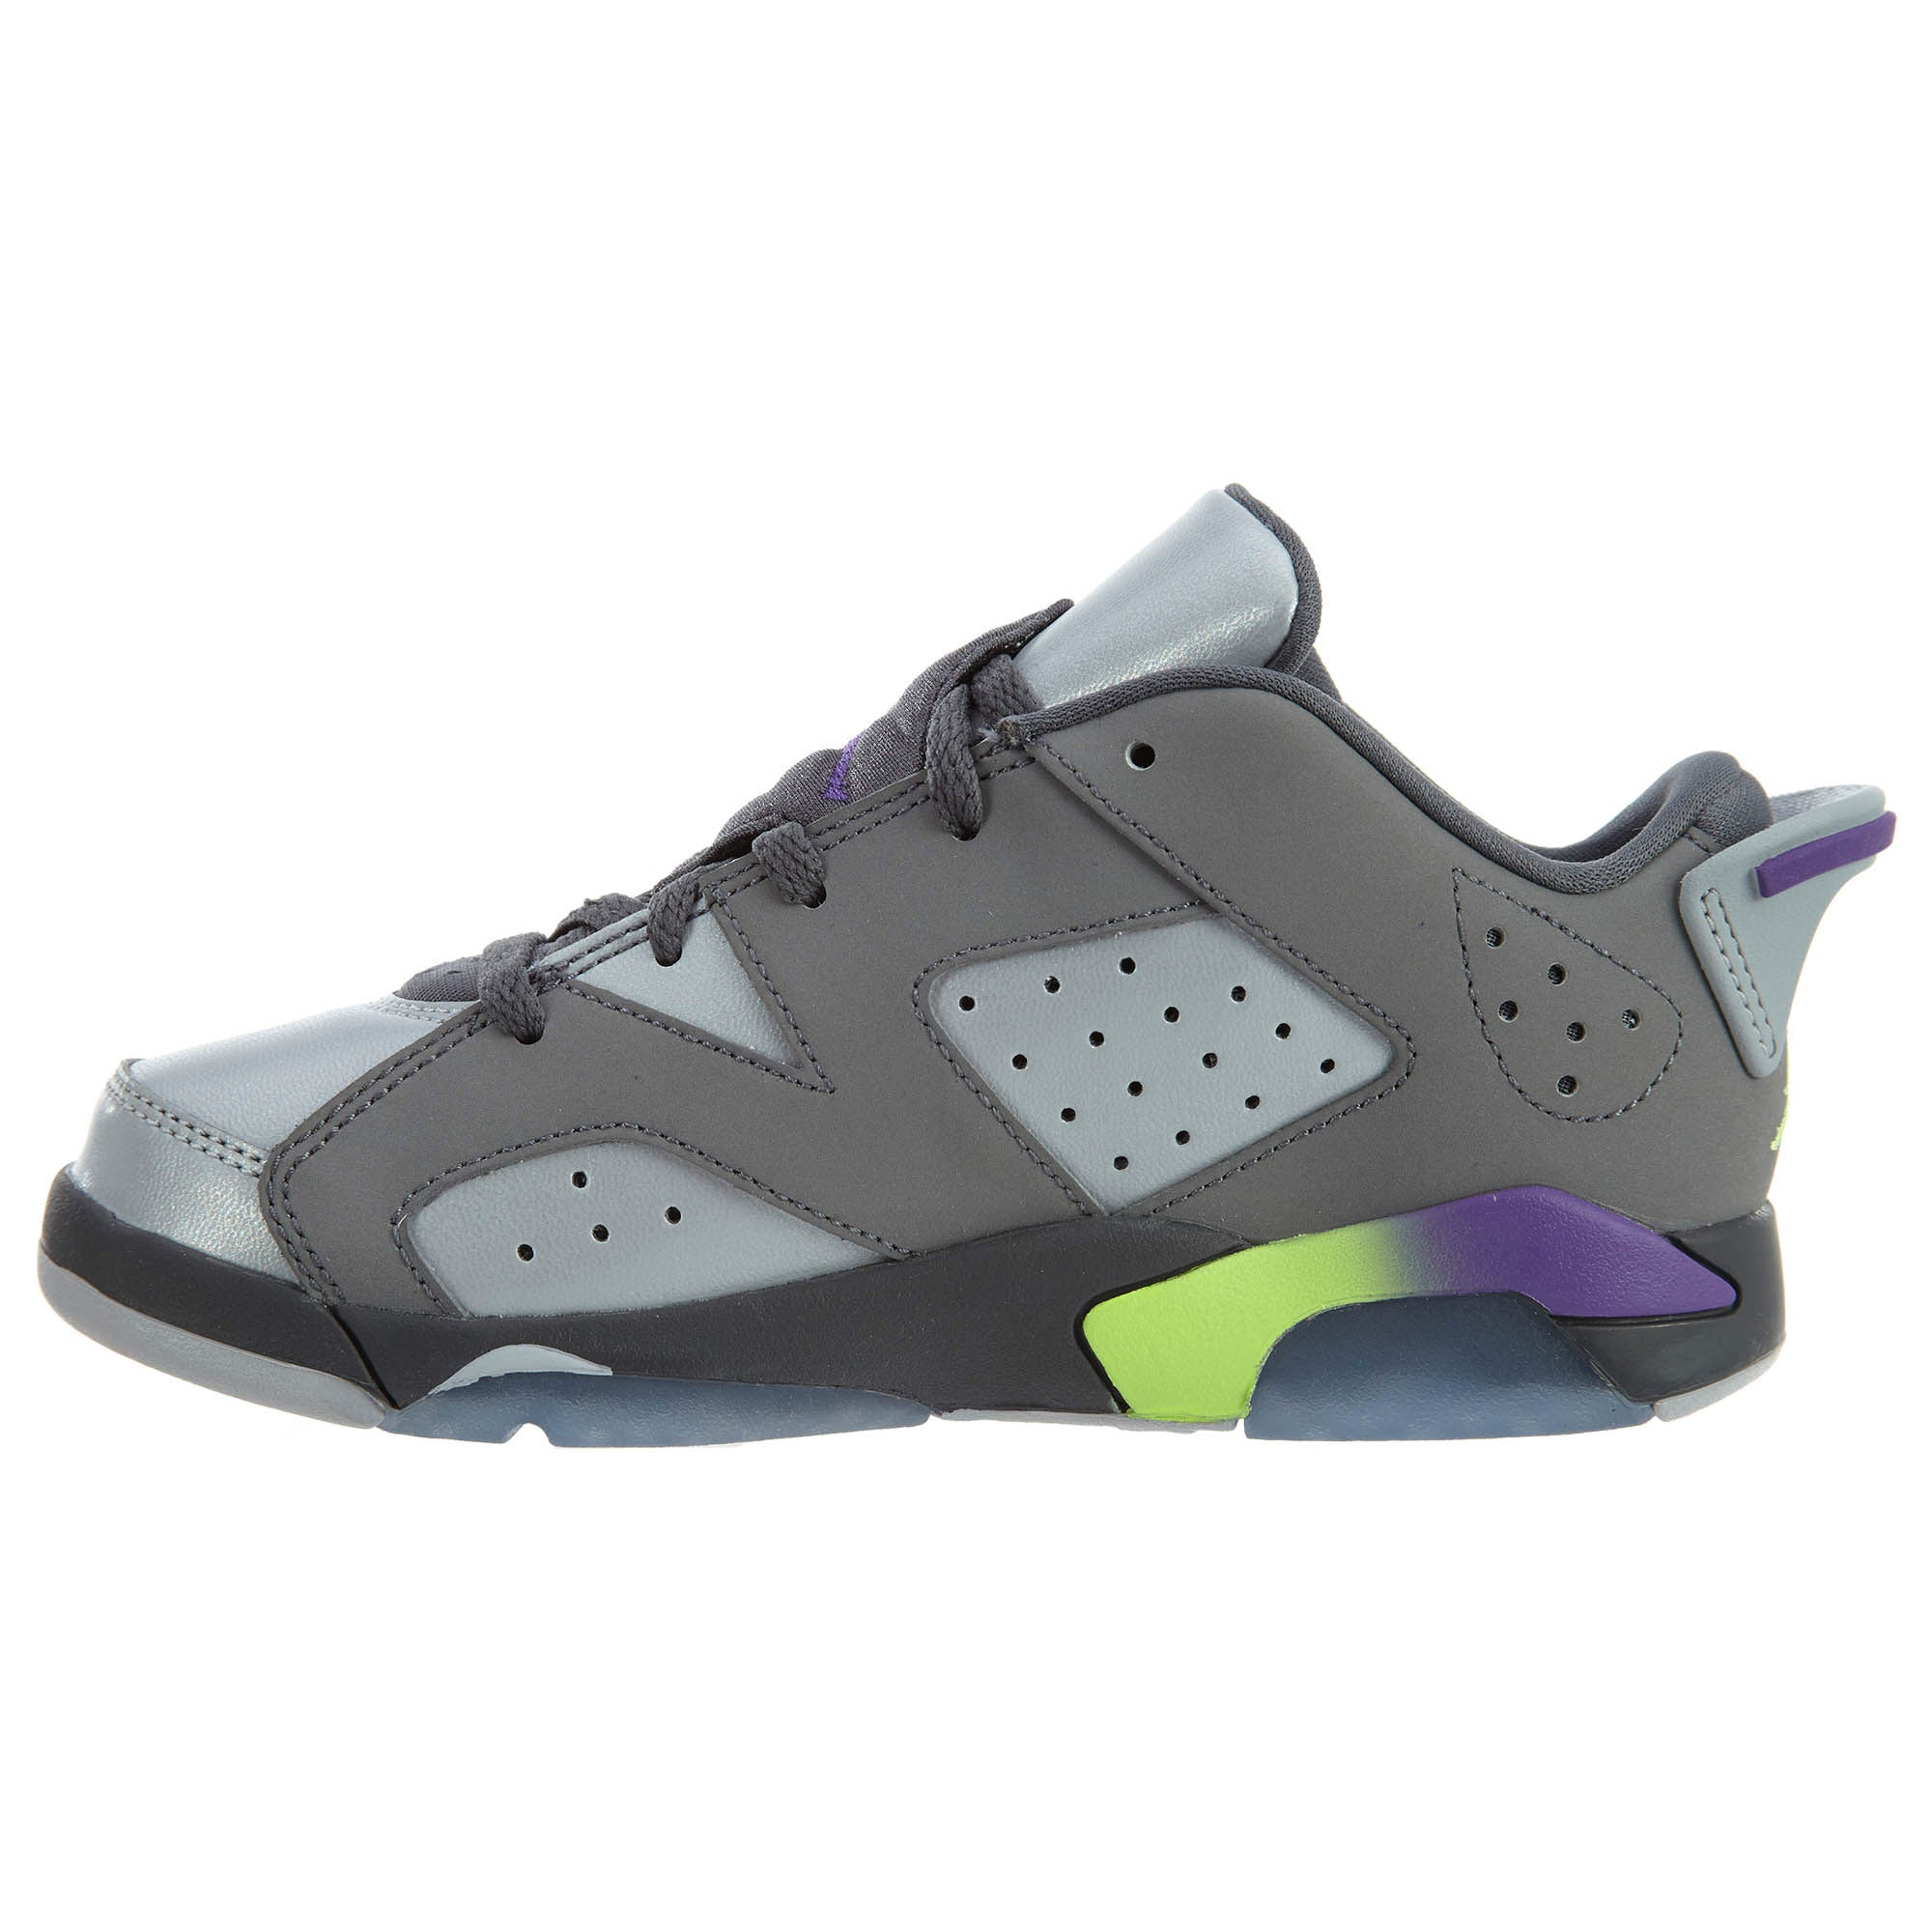 6a17b3722bf2 Jordan 6 Retro Low Little Kids Style   768884